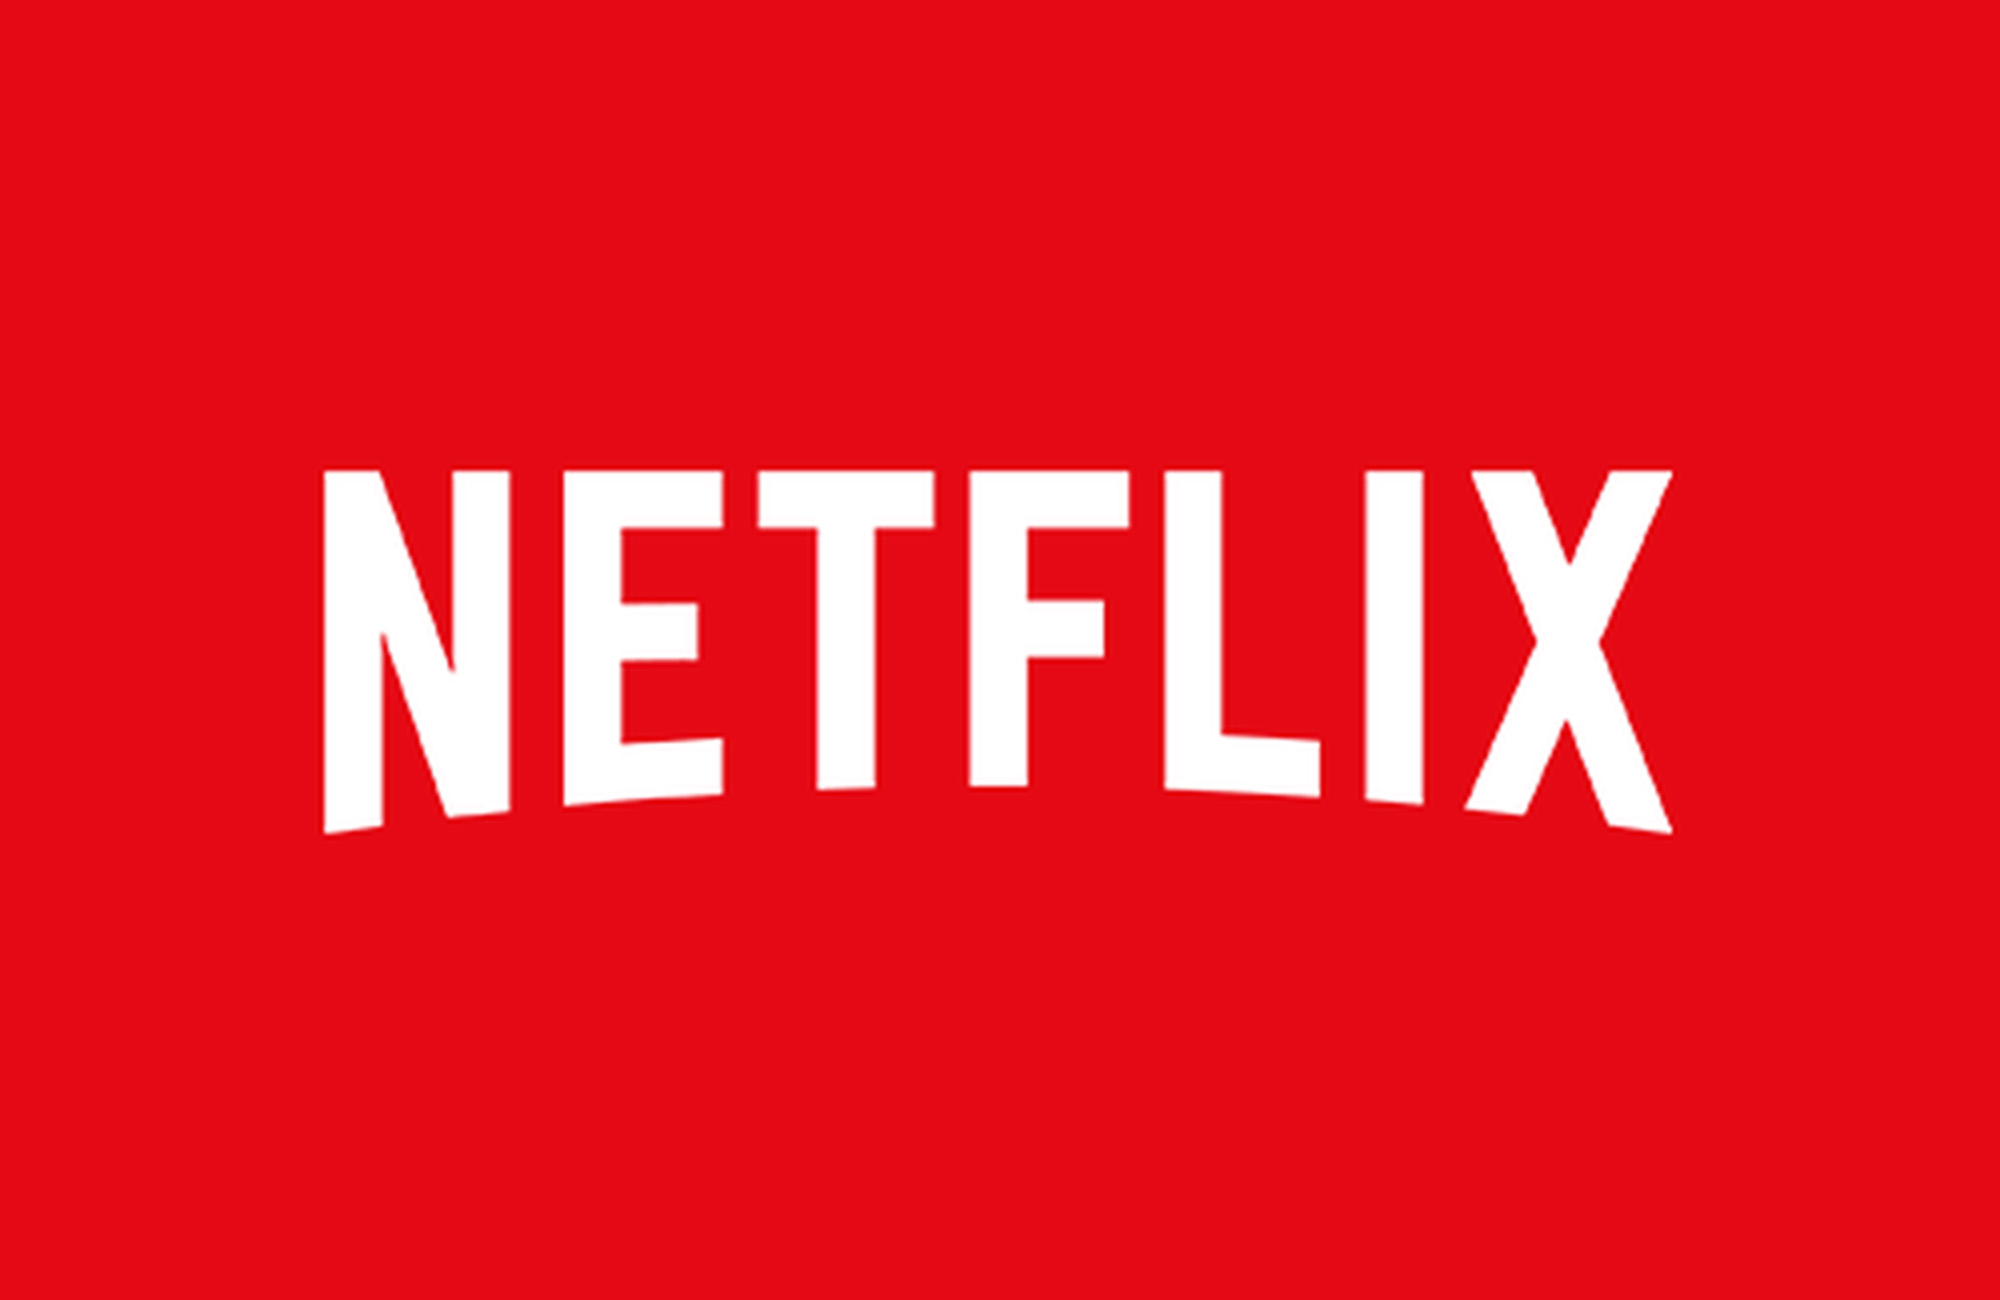 The Netflix logo on a red background.